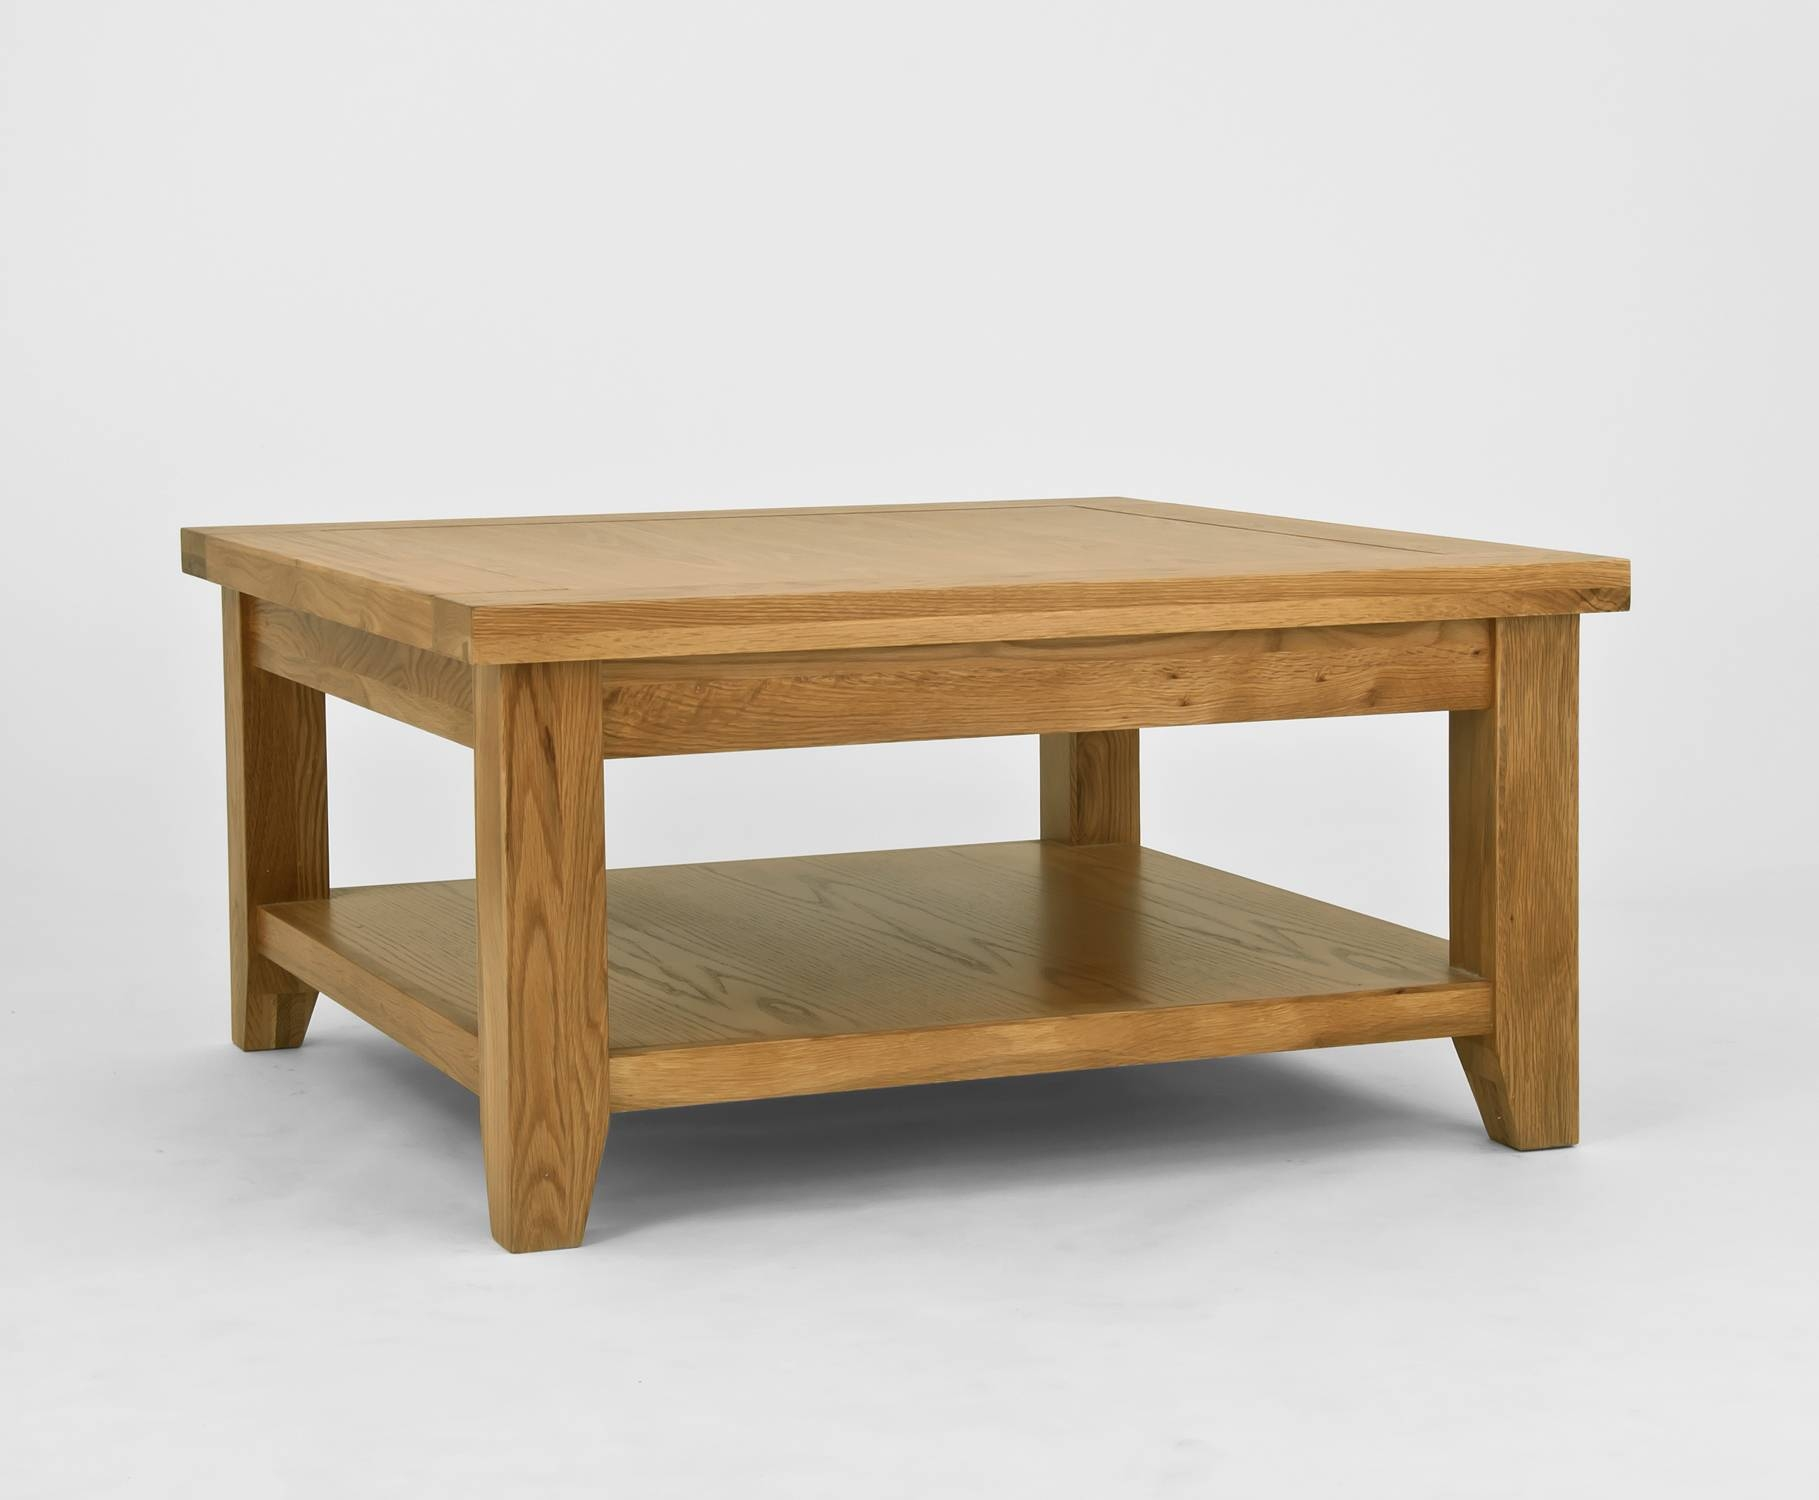 Provence Square Coffee Table With Shelf In Oak - Beyond Stores pertaining to Oak Coffee Tables With Shelf (Image 21 of 30)